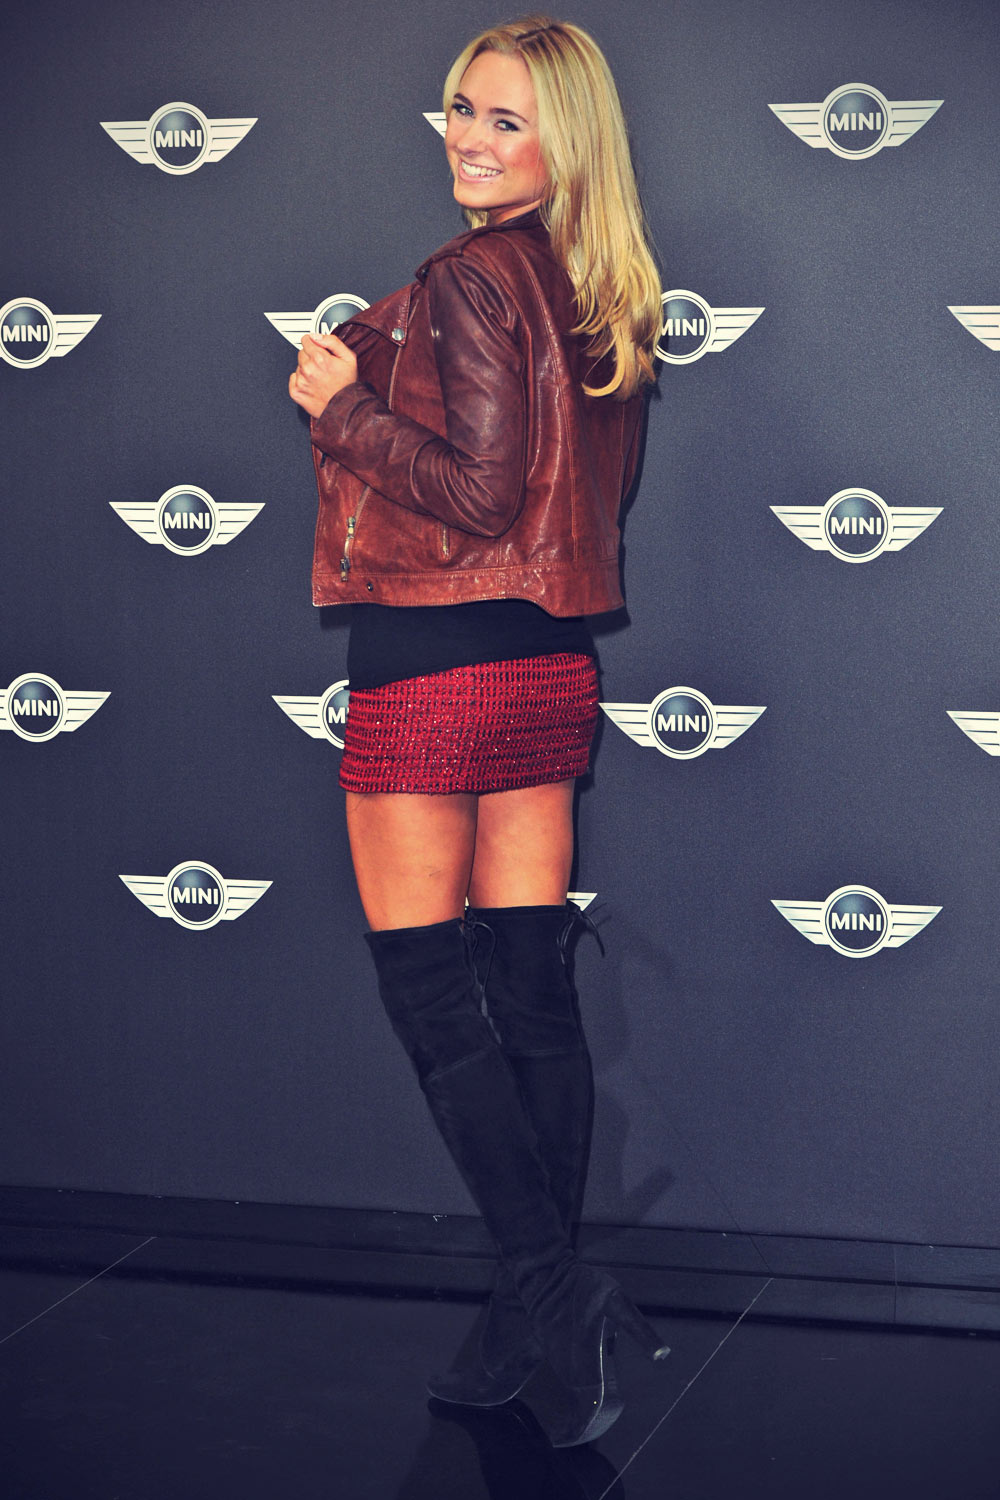 Kimberley Garner attends The MINI launch party